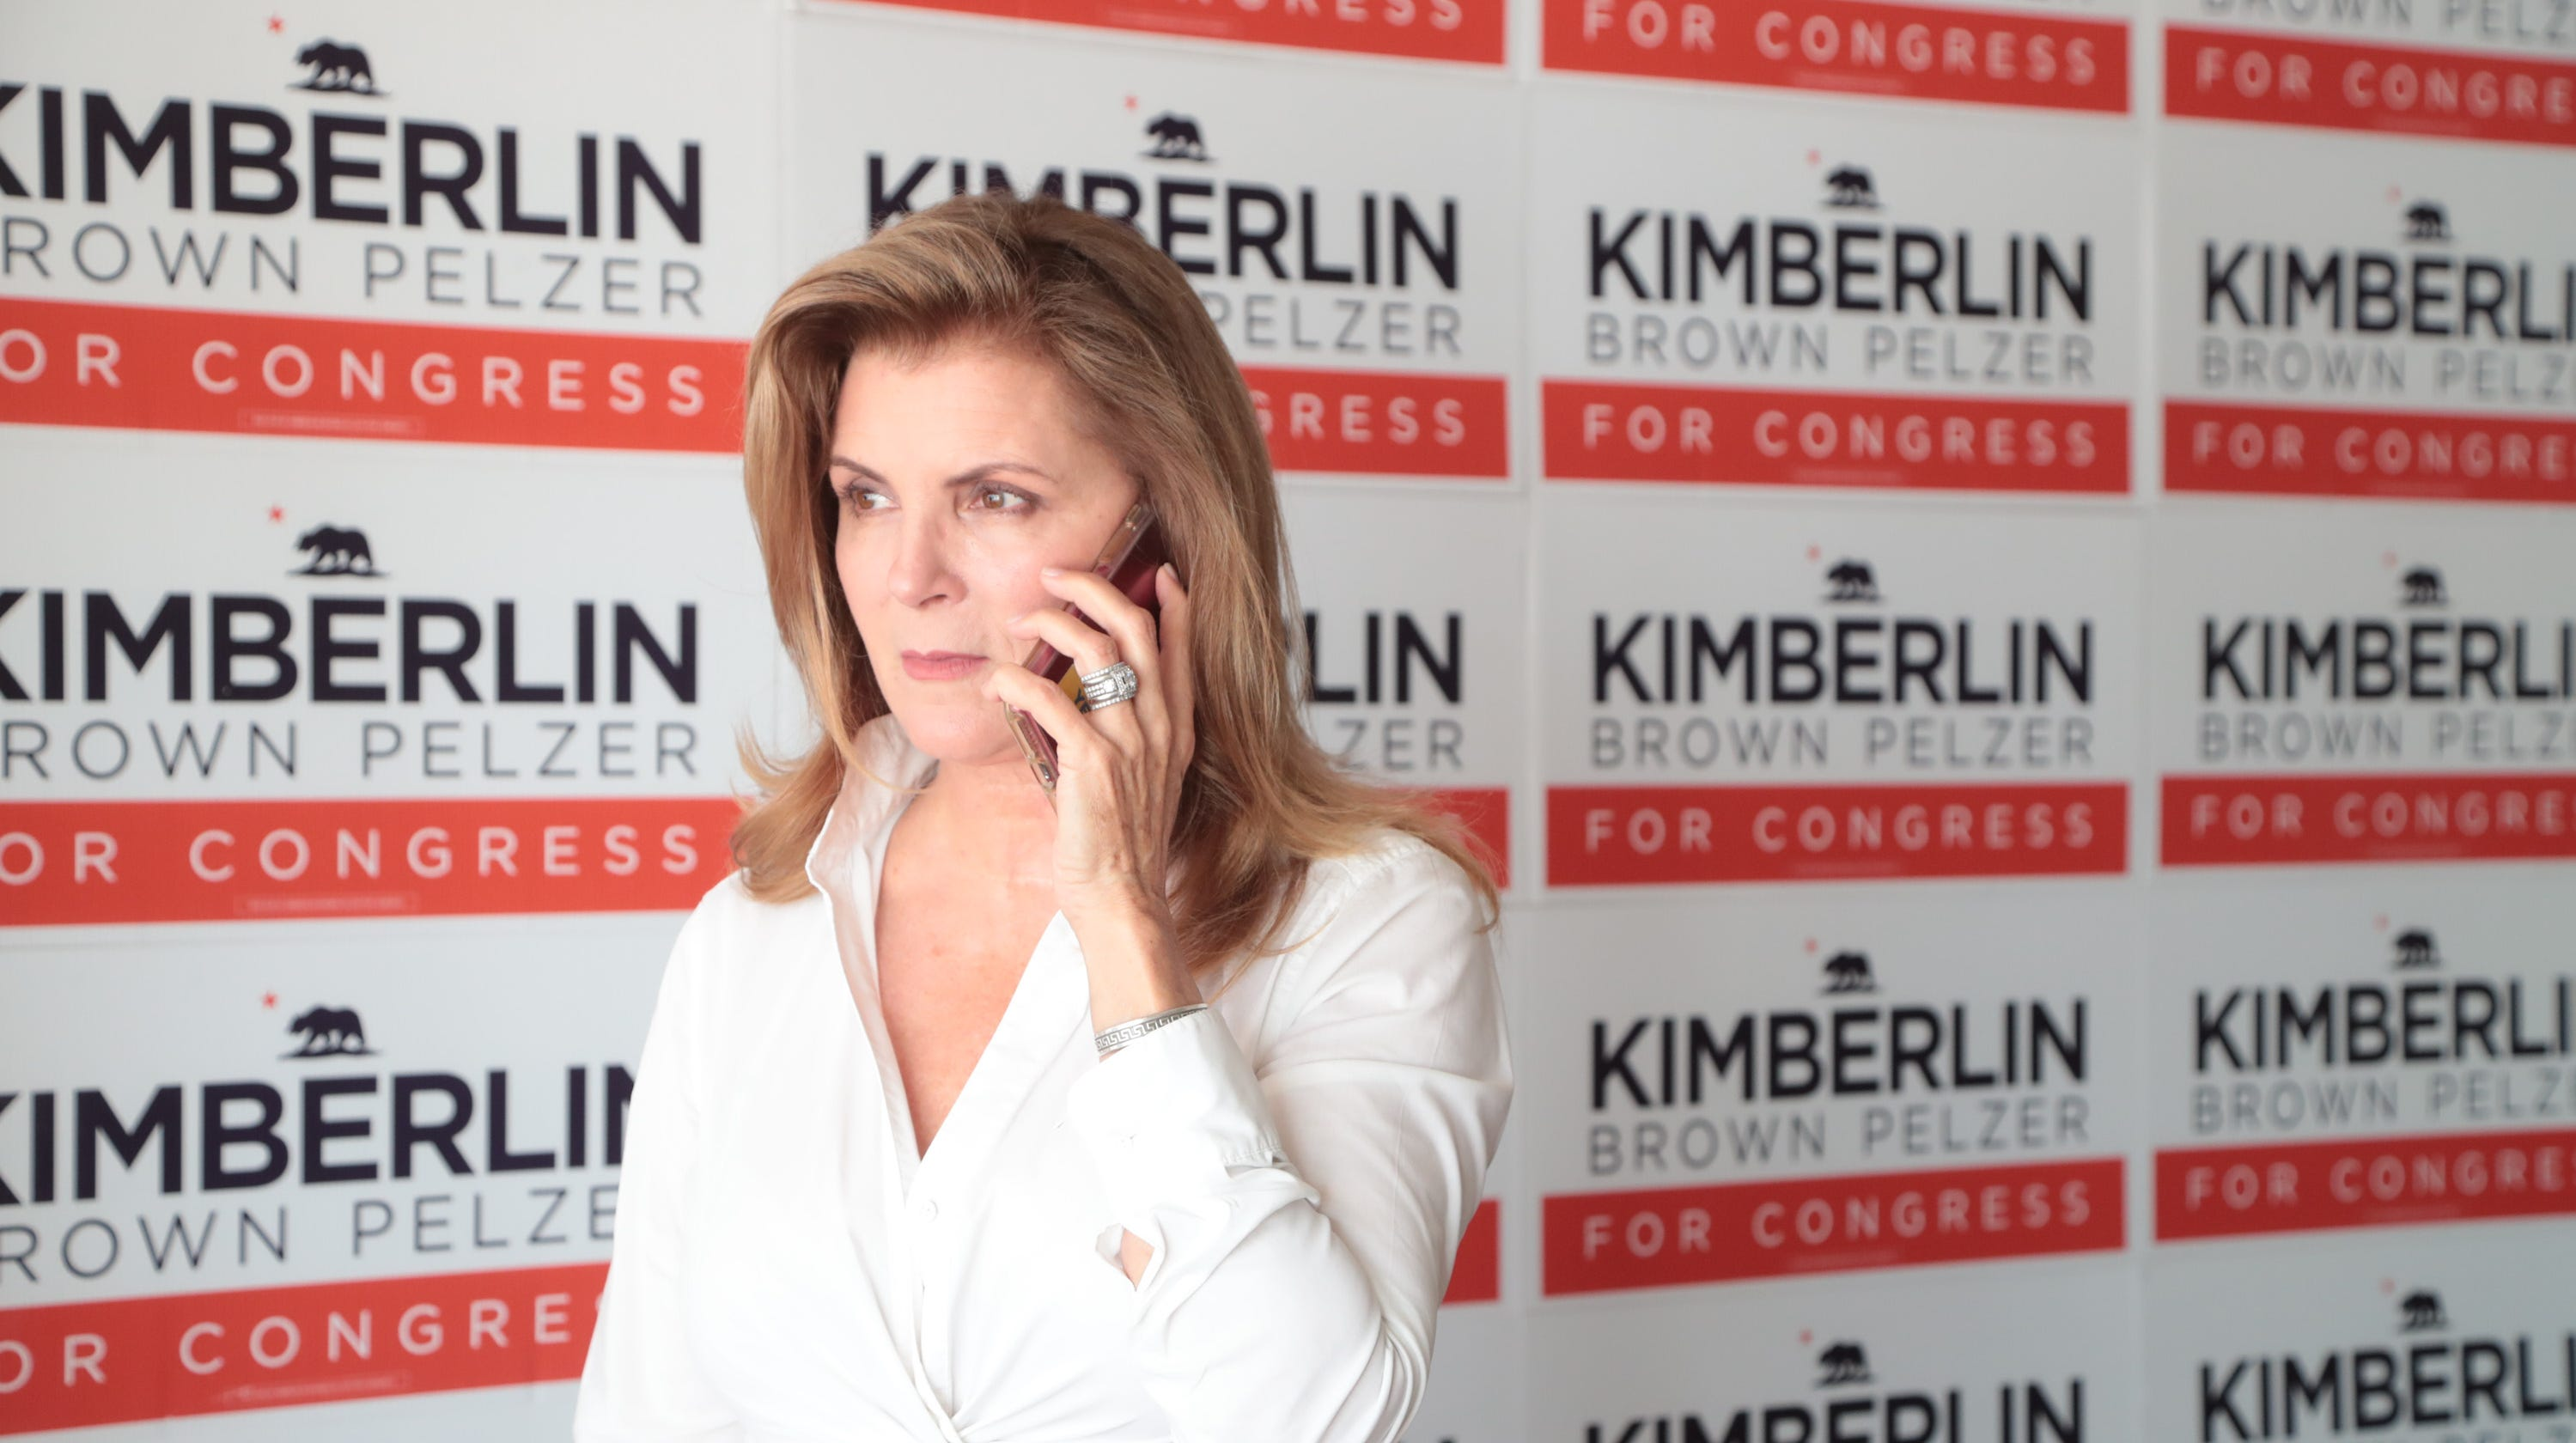 Kimberlin Brown Pelzer makes a call in her Cathedral City campaign office, August 22, 2018.